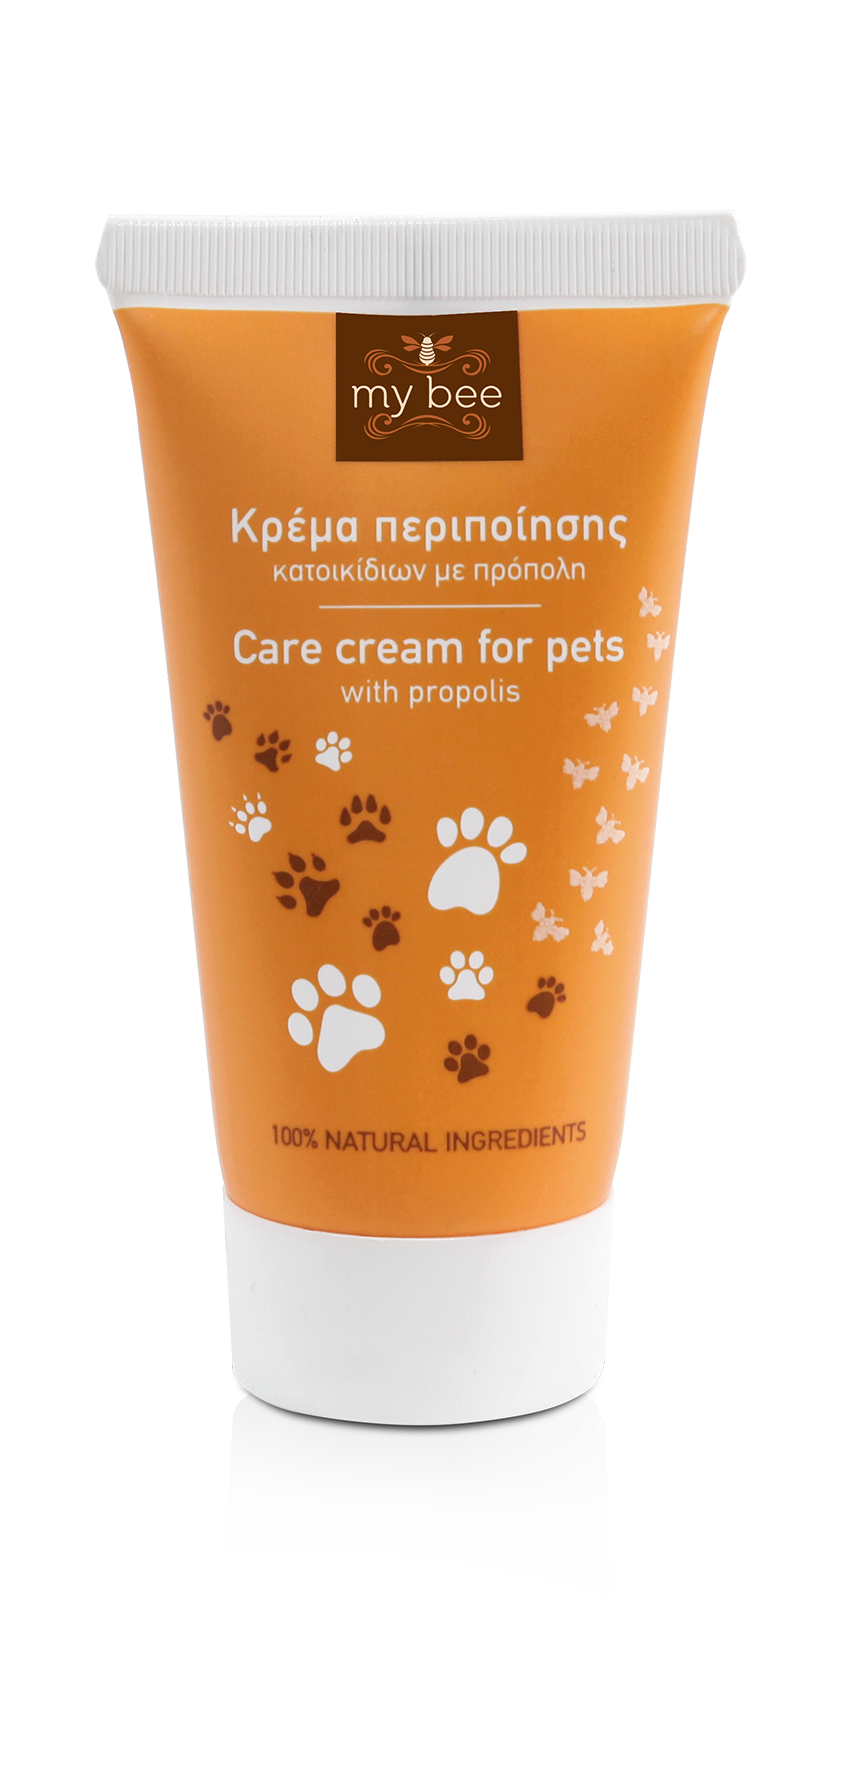 'MyBee' Care Cream for Pets with propolis - 50ml